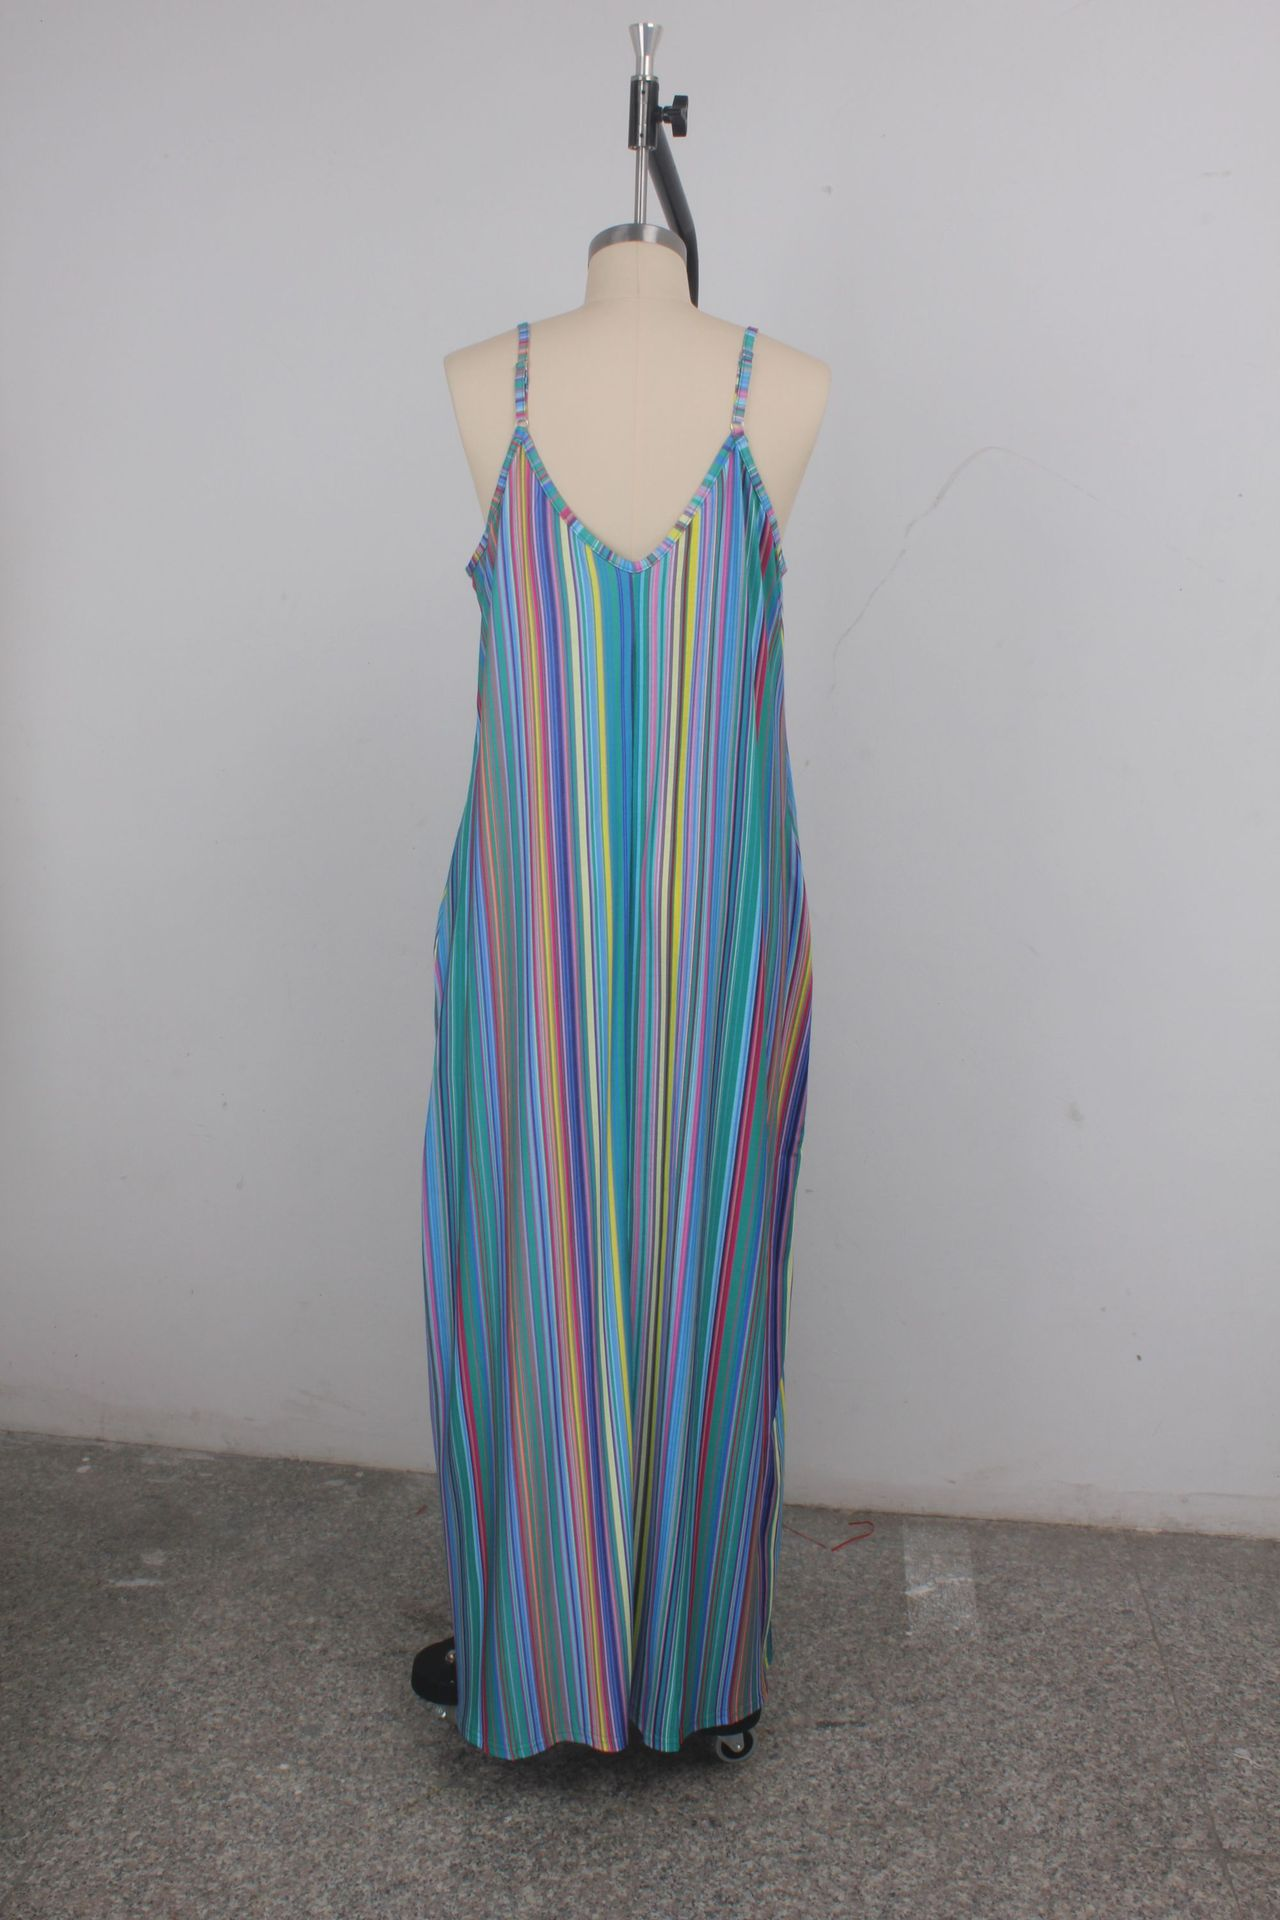 9308 women Summer loose dress plus size maxi dress with pockets vertical stripes dress